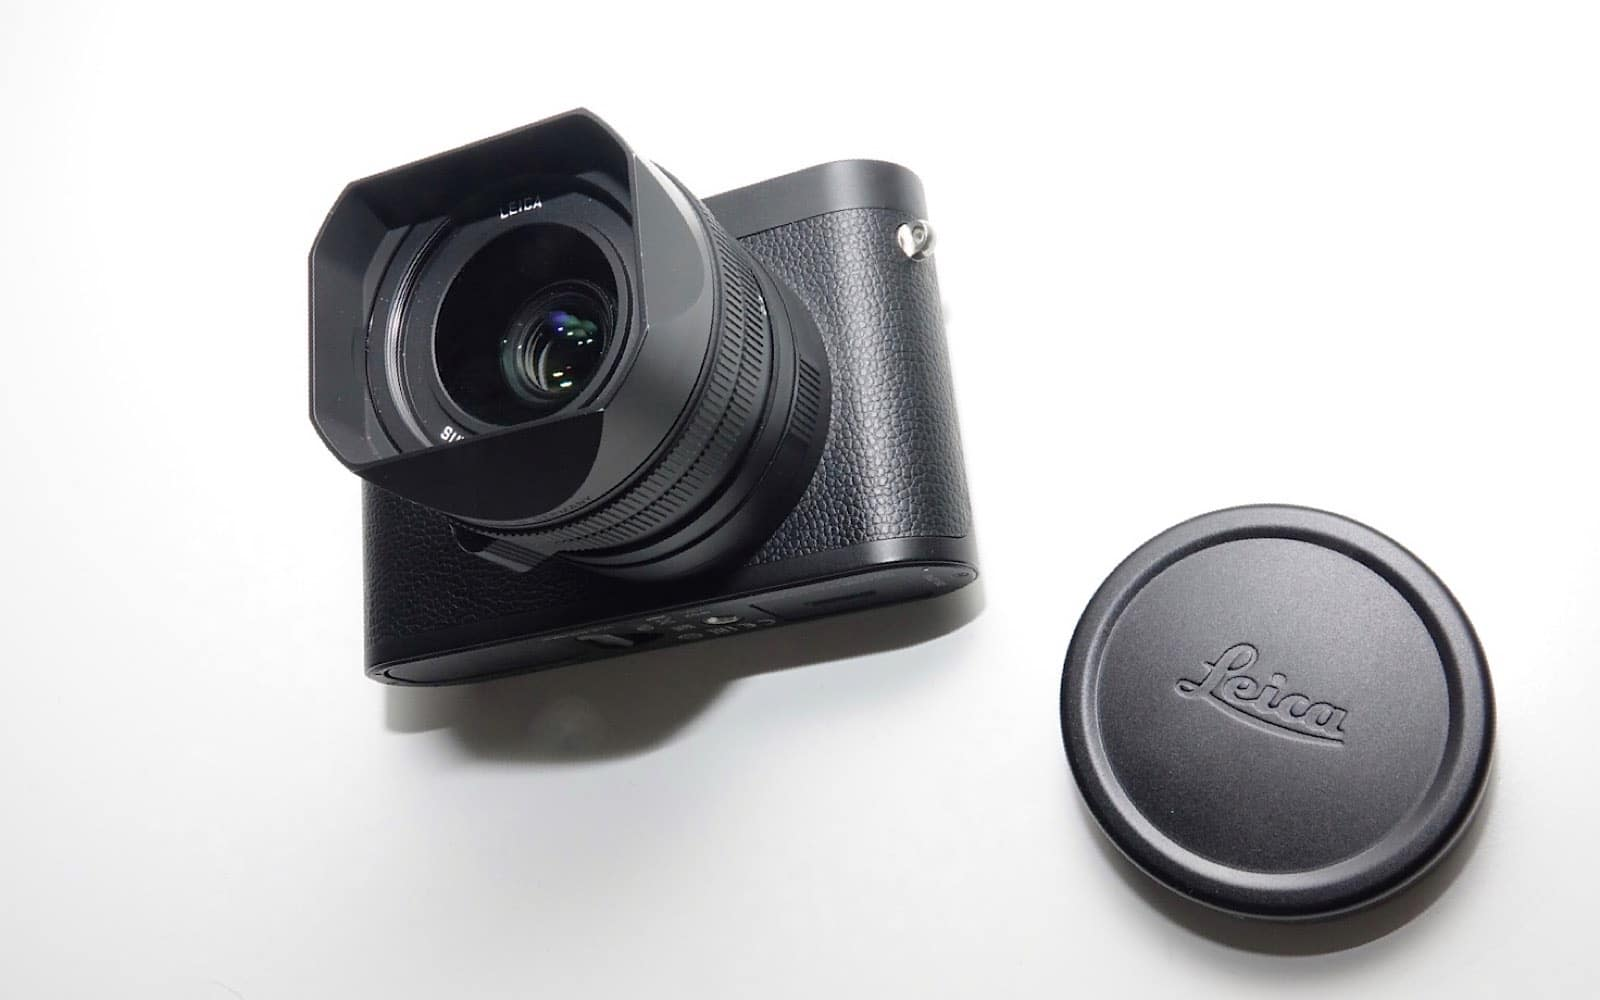 The Leica Q2 Monochrom and its metal lens cap.